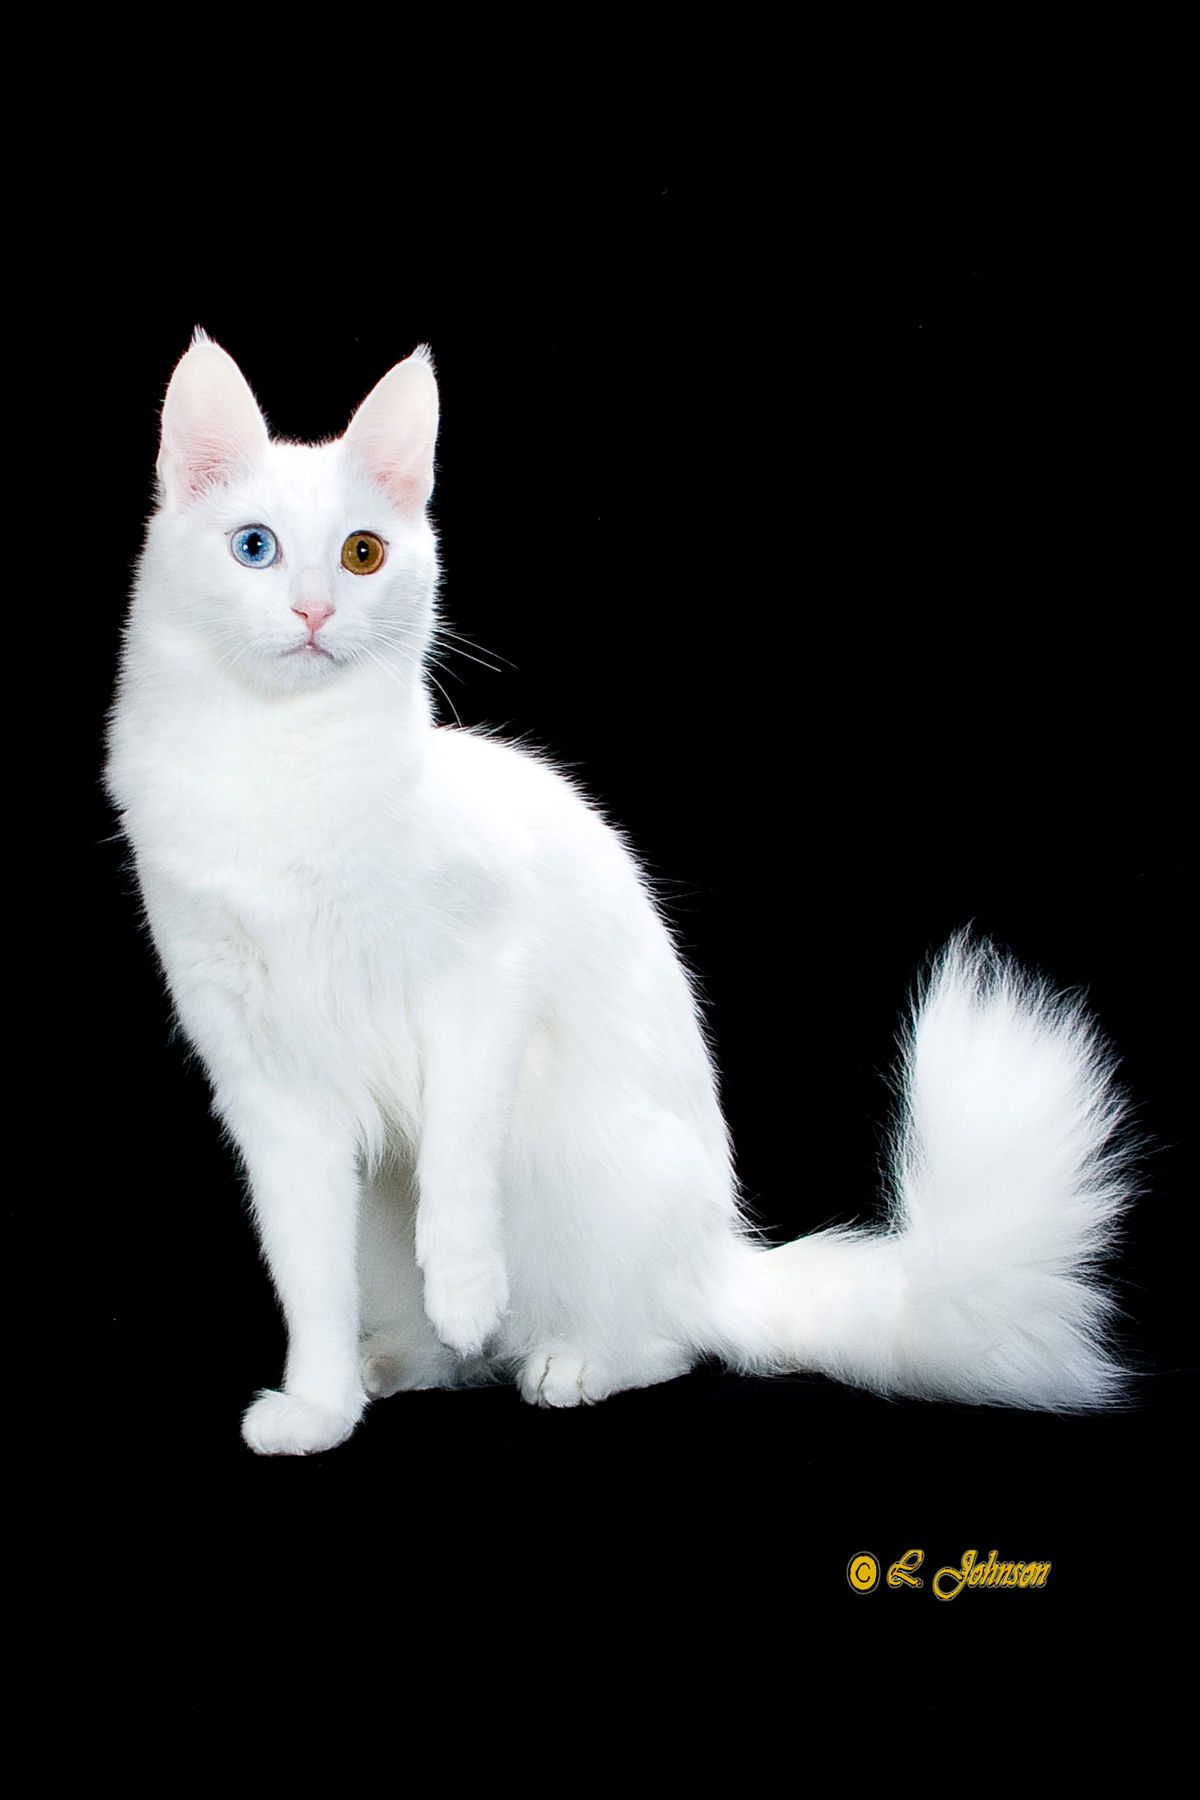 Turkish Angora This Reminds Me Of My Cat Crystal Only Her Eyes Were A Lighter Blue And Gold She Was Also Deaf Turkish Angora Cat Cat Breeds White Cat Breeds